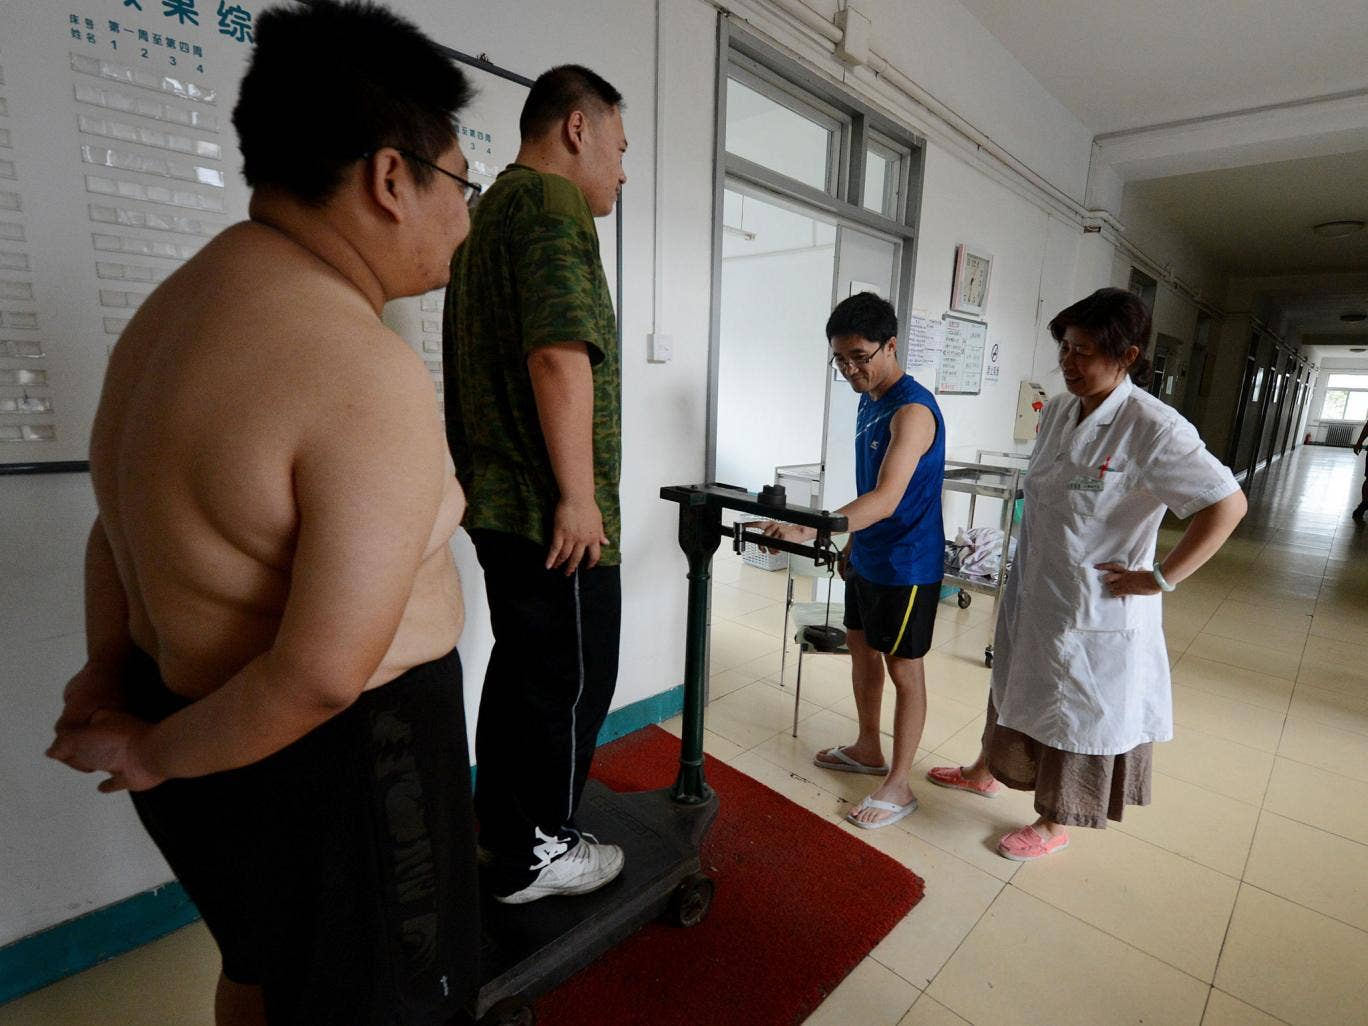 Patients attend a weight-loss clinic in the city of Tianjin.